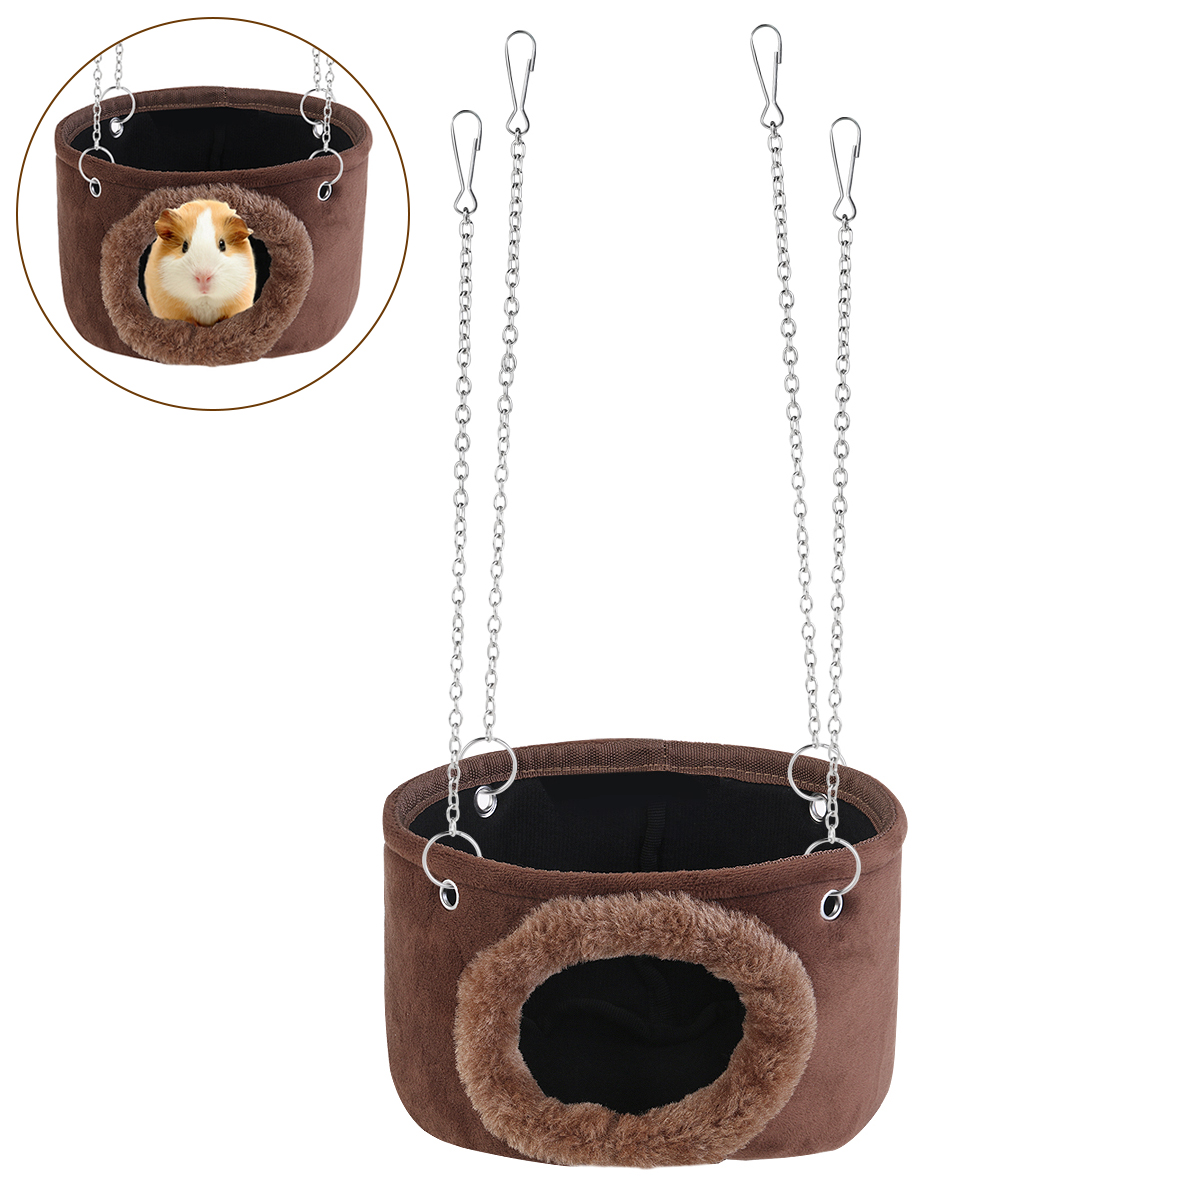 Small Animals Hammock Hanging House Snuggle Cave Hut Squirrel Warm House For Squirrel Chinchilla Guinea Pig Rat With 4pcs Chains